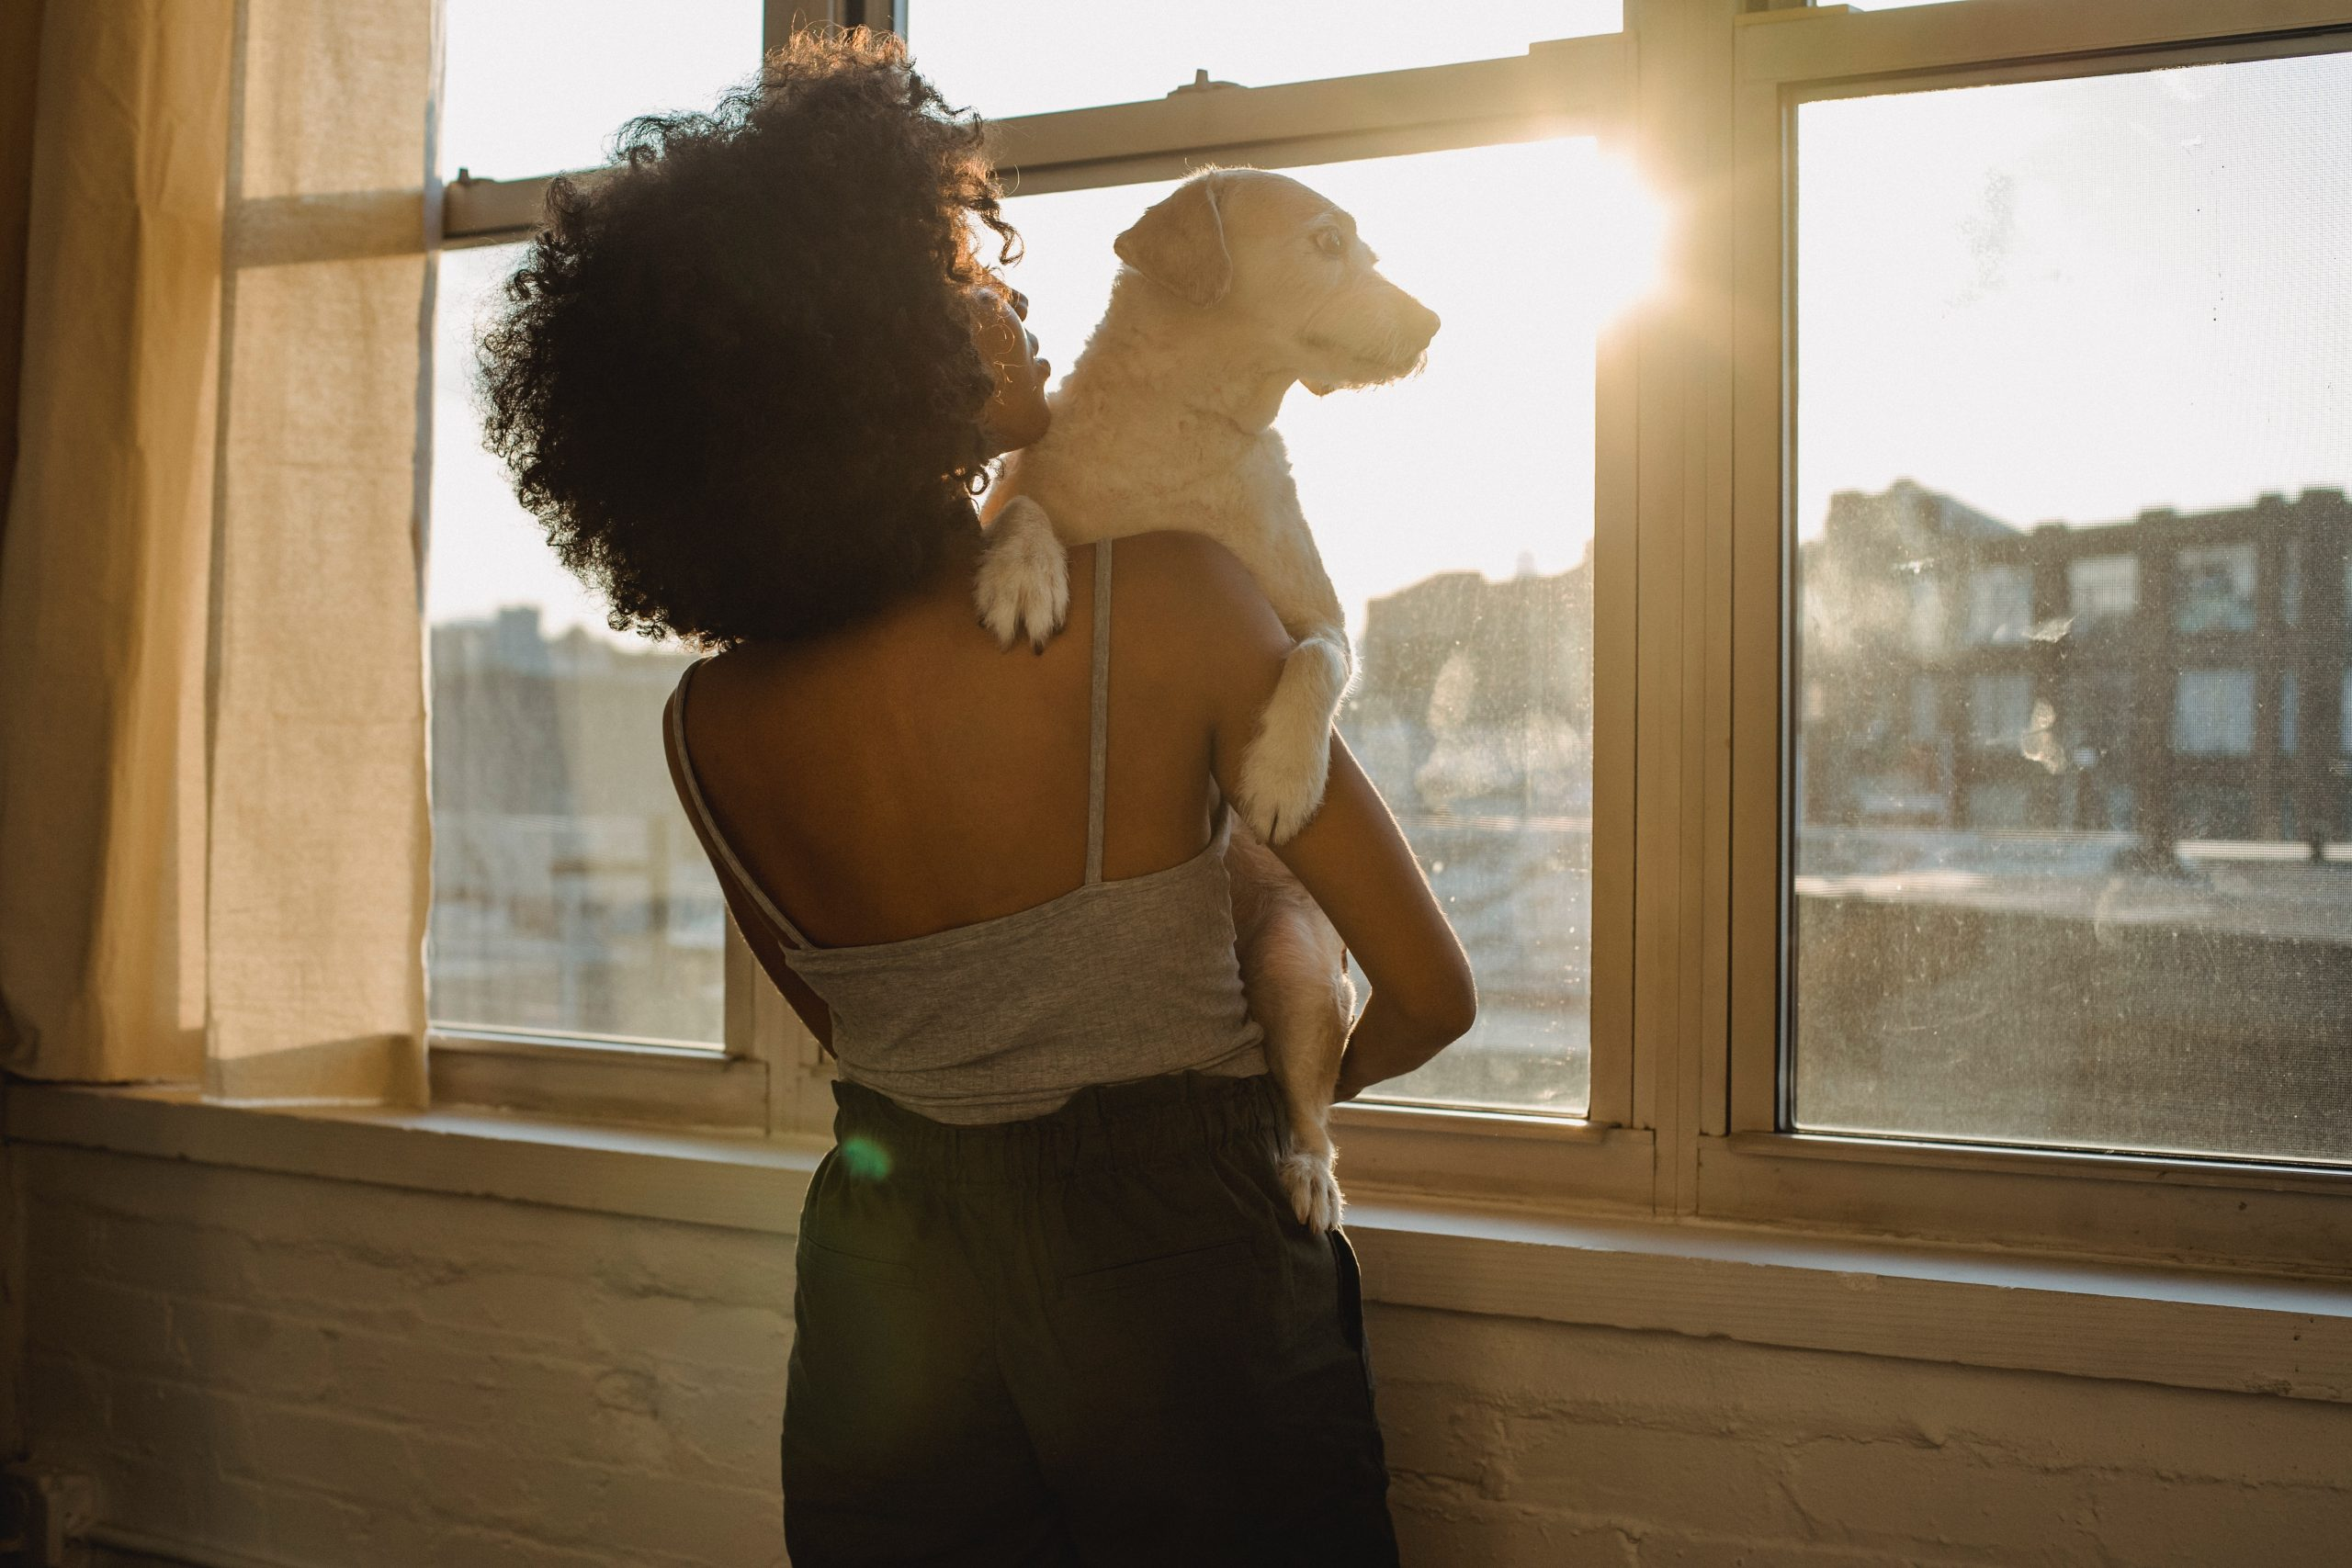 Woman holding dog in front of window